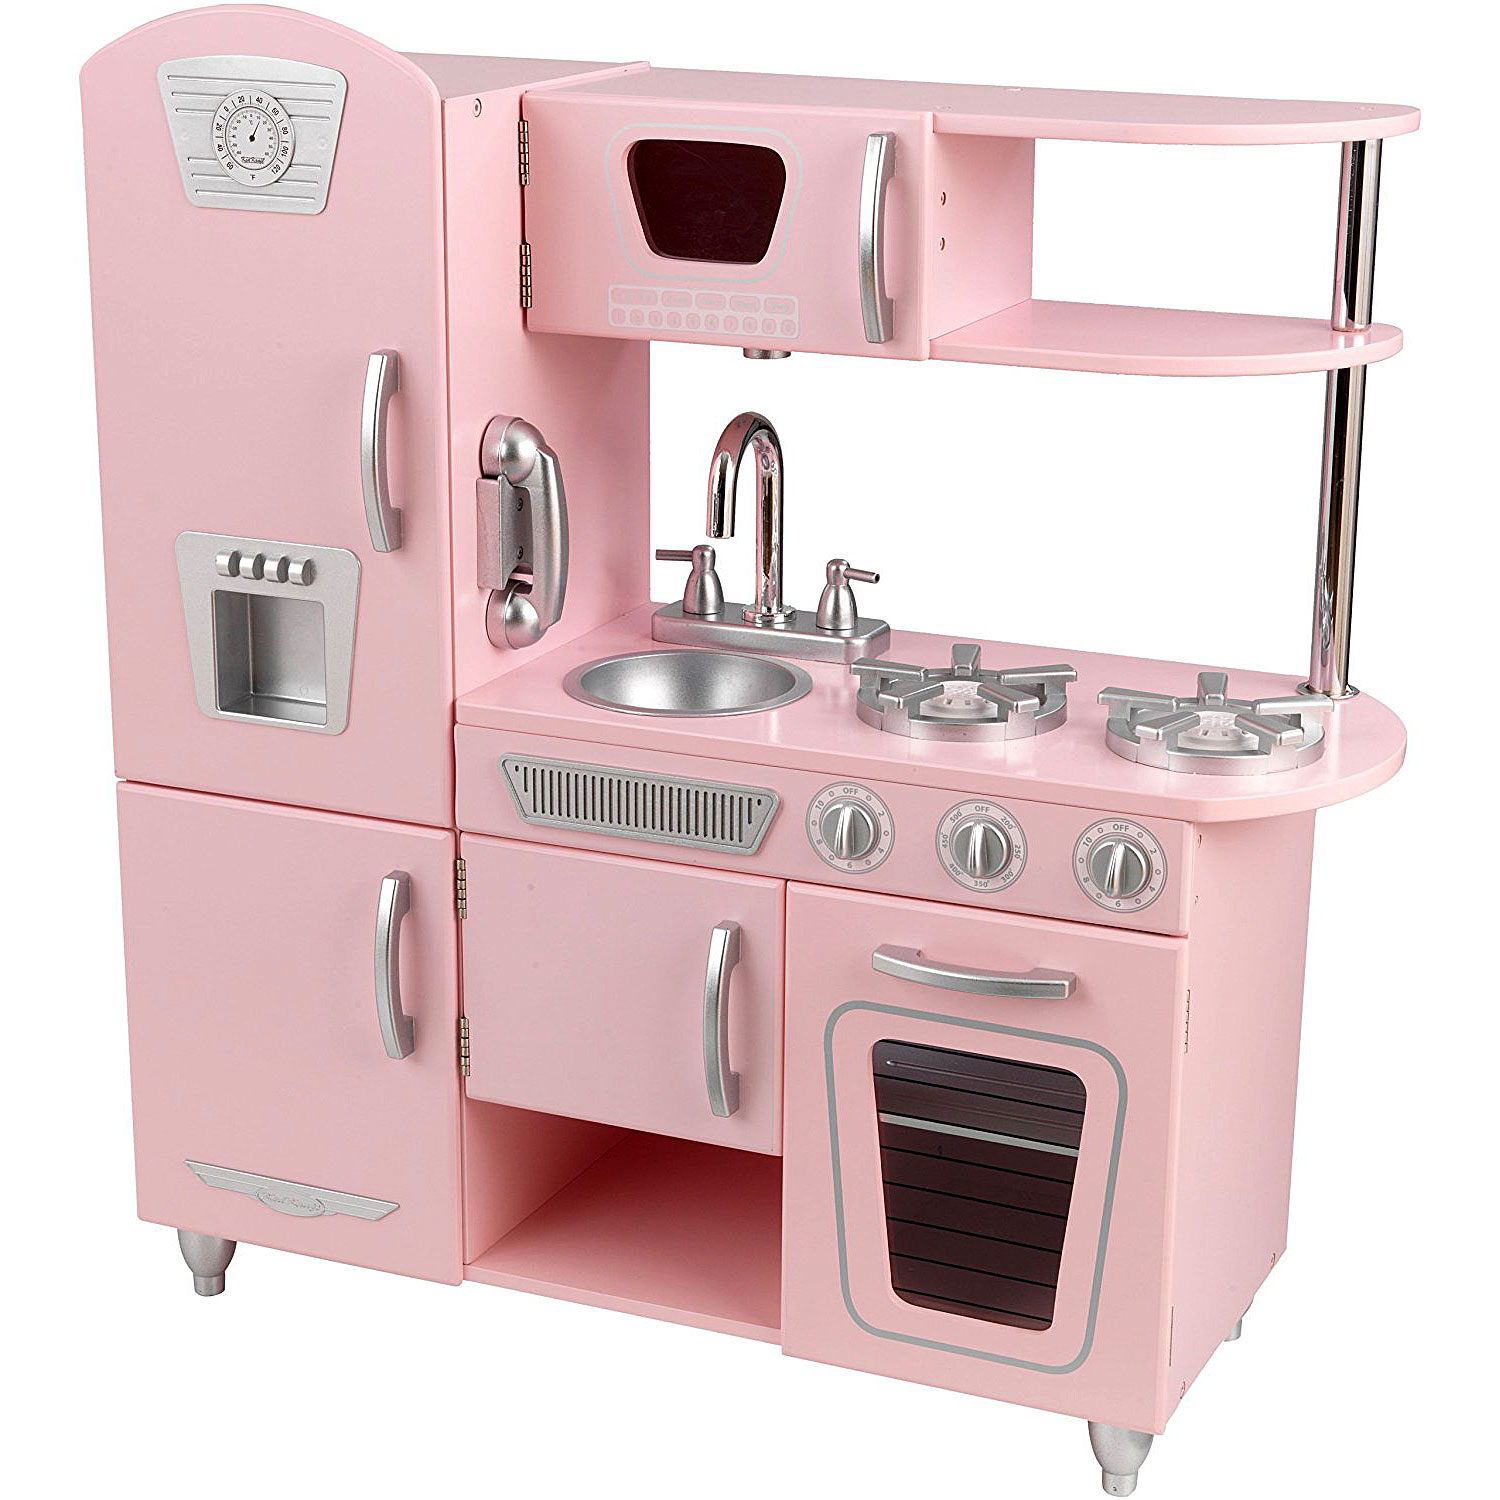 KidKraft - Vintage Play Kitchen - Pink Wooden Toy Kitchen 53179